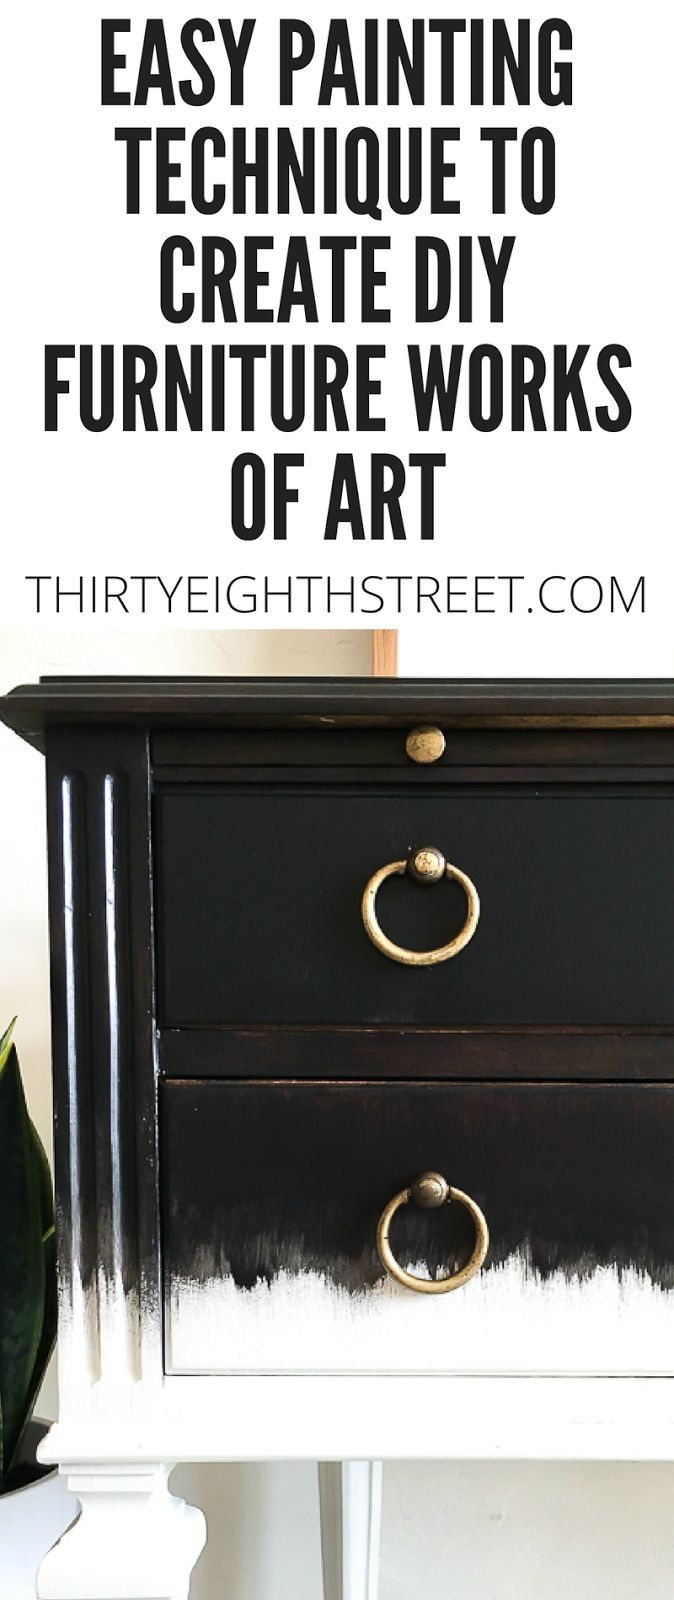 Learn how to use this easy Dry Brush Painting Technique to create furniture that looks like art! Follow this step by step guide and watch our video tutorial to see how we achieved this dry brushing paint technique on our furniture. #verticaldrybrushing